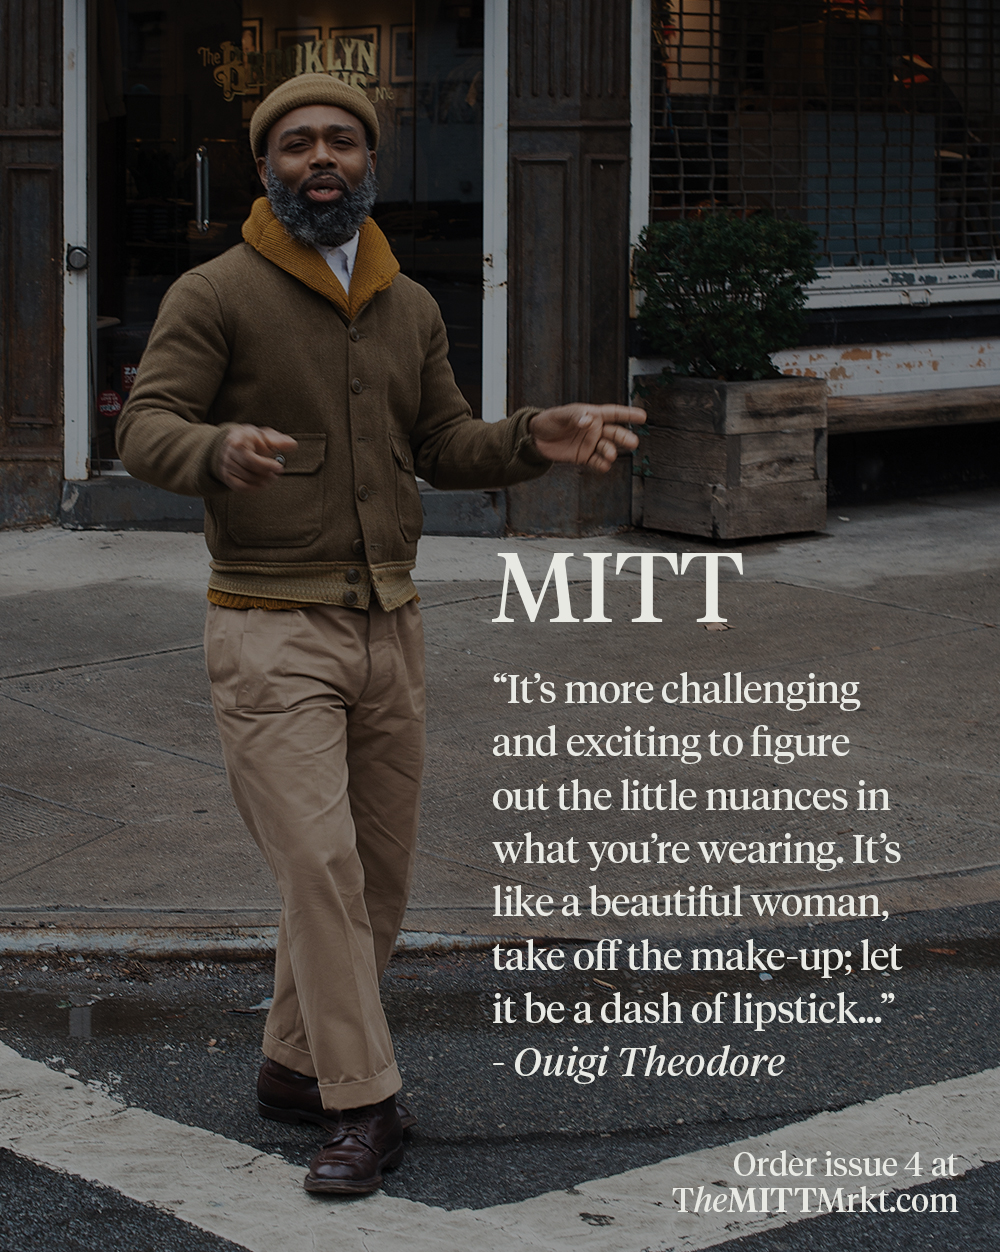 MITT magazine issue 4 ships out later this week! If you haven't pre-ordered your copy yet, head over to The MITT Mrkt. :)